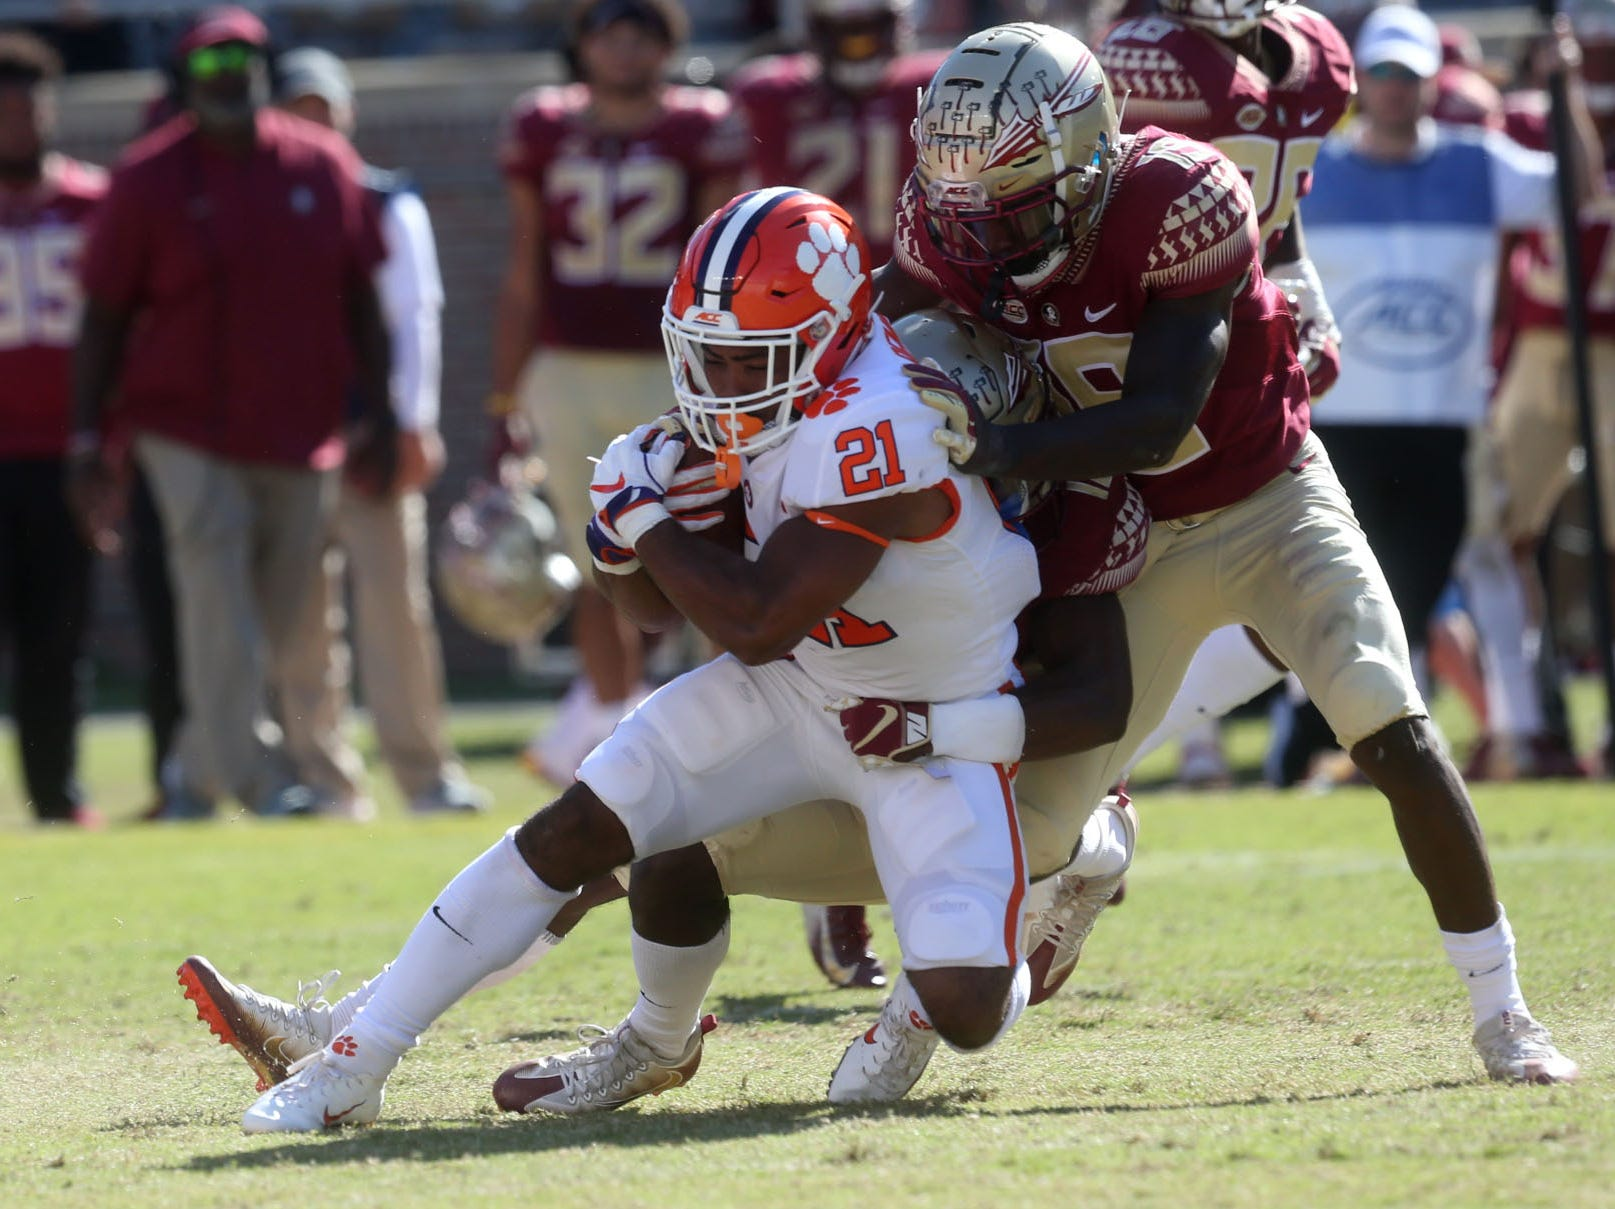 Florida State Seminoles defensive back A.J. Lytton (12) tackles Clemson Tigers running back Darien Rencher (21) as the Florida State Seminoles take on the Clemson Tigers in college football at Doak S. Campbell Stadium on Saturday, Oct. 27, 2018.